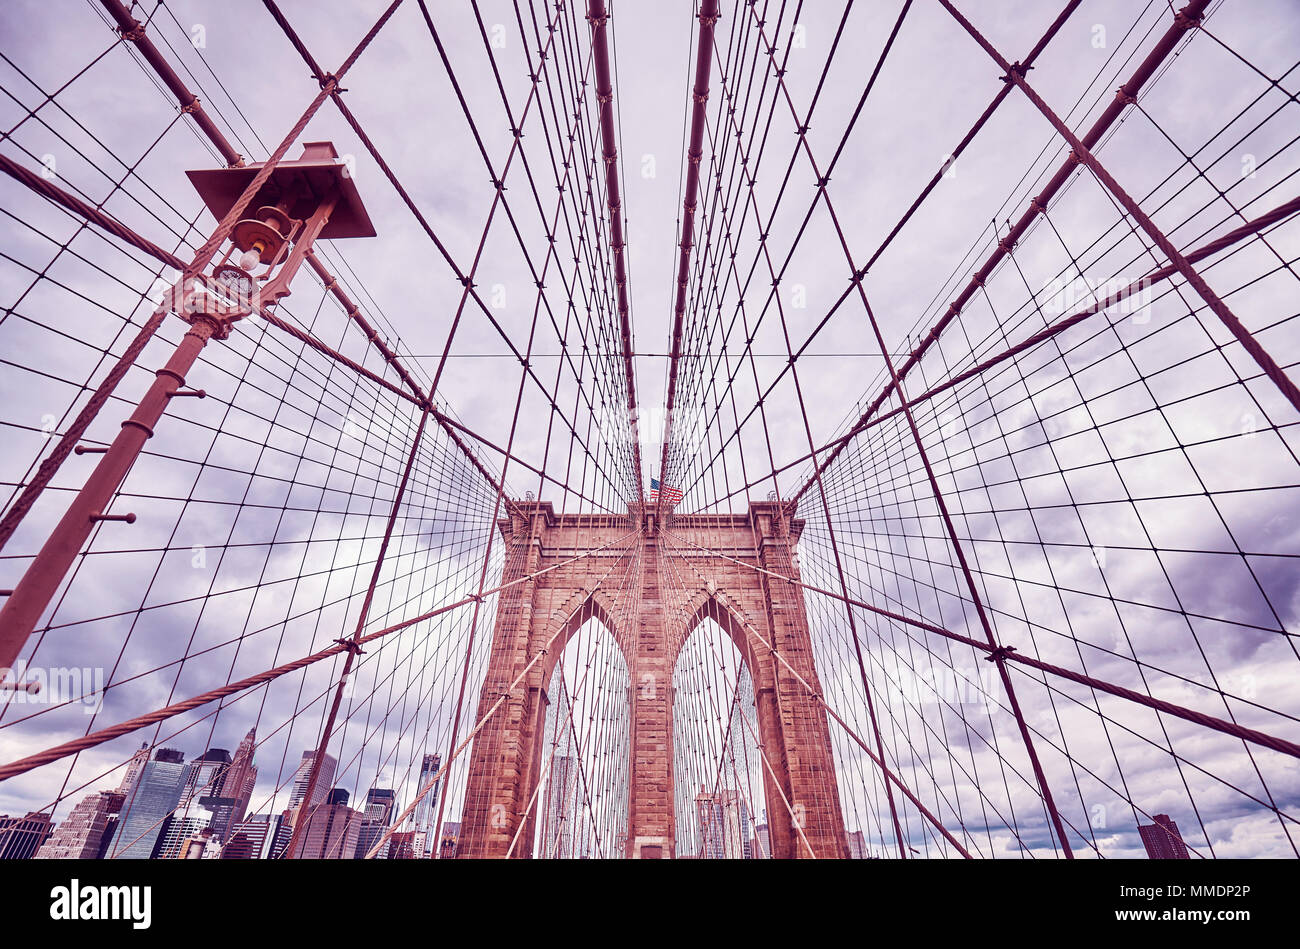 Vintage toned picture of the Brooklyn Bridge, New York City, USA. - Stock Image